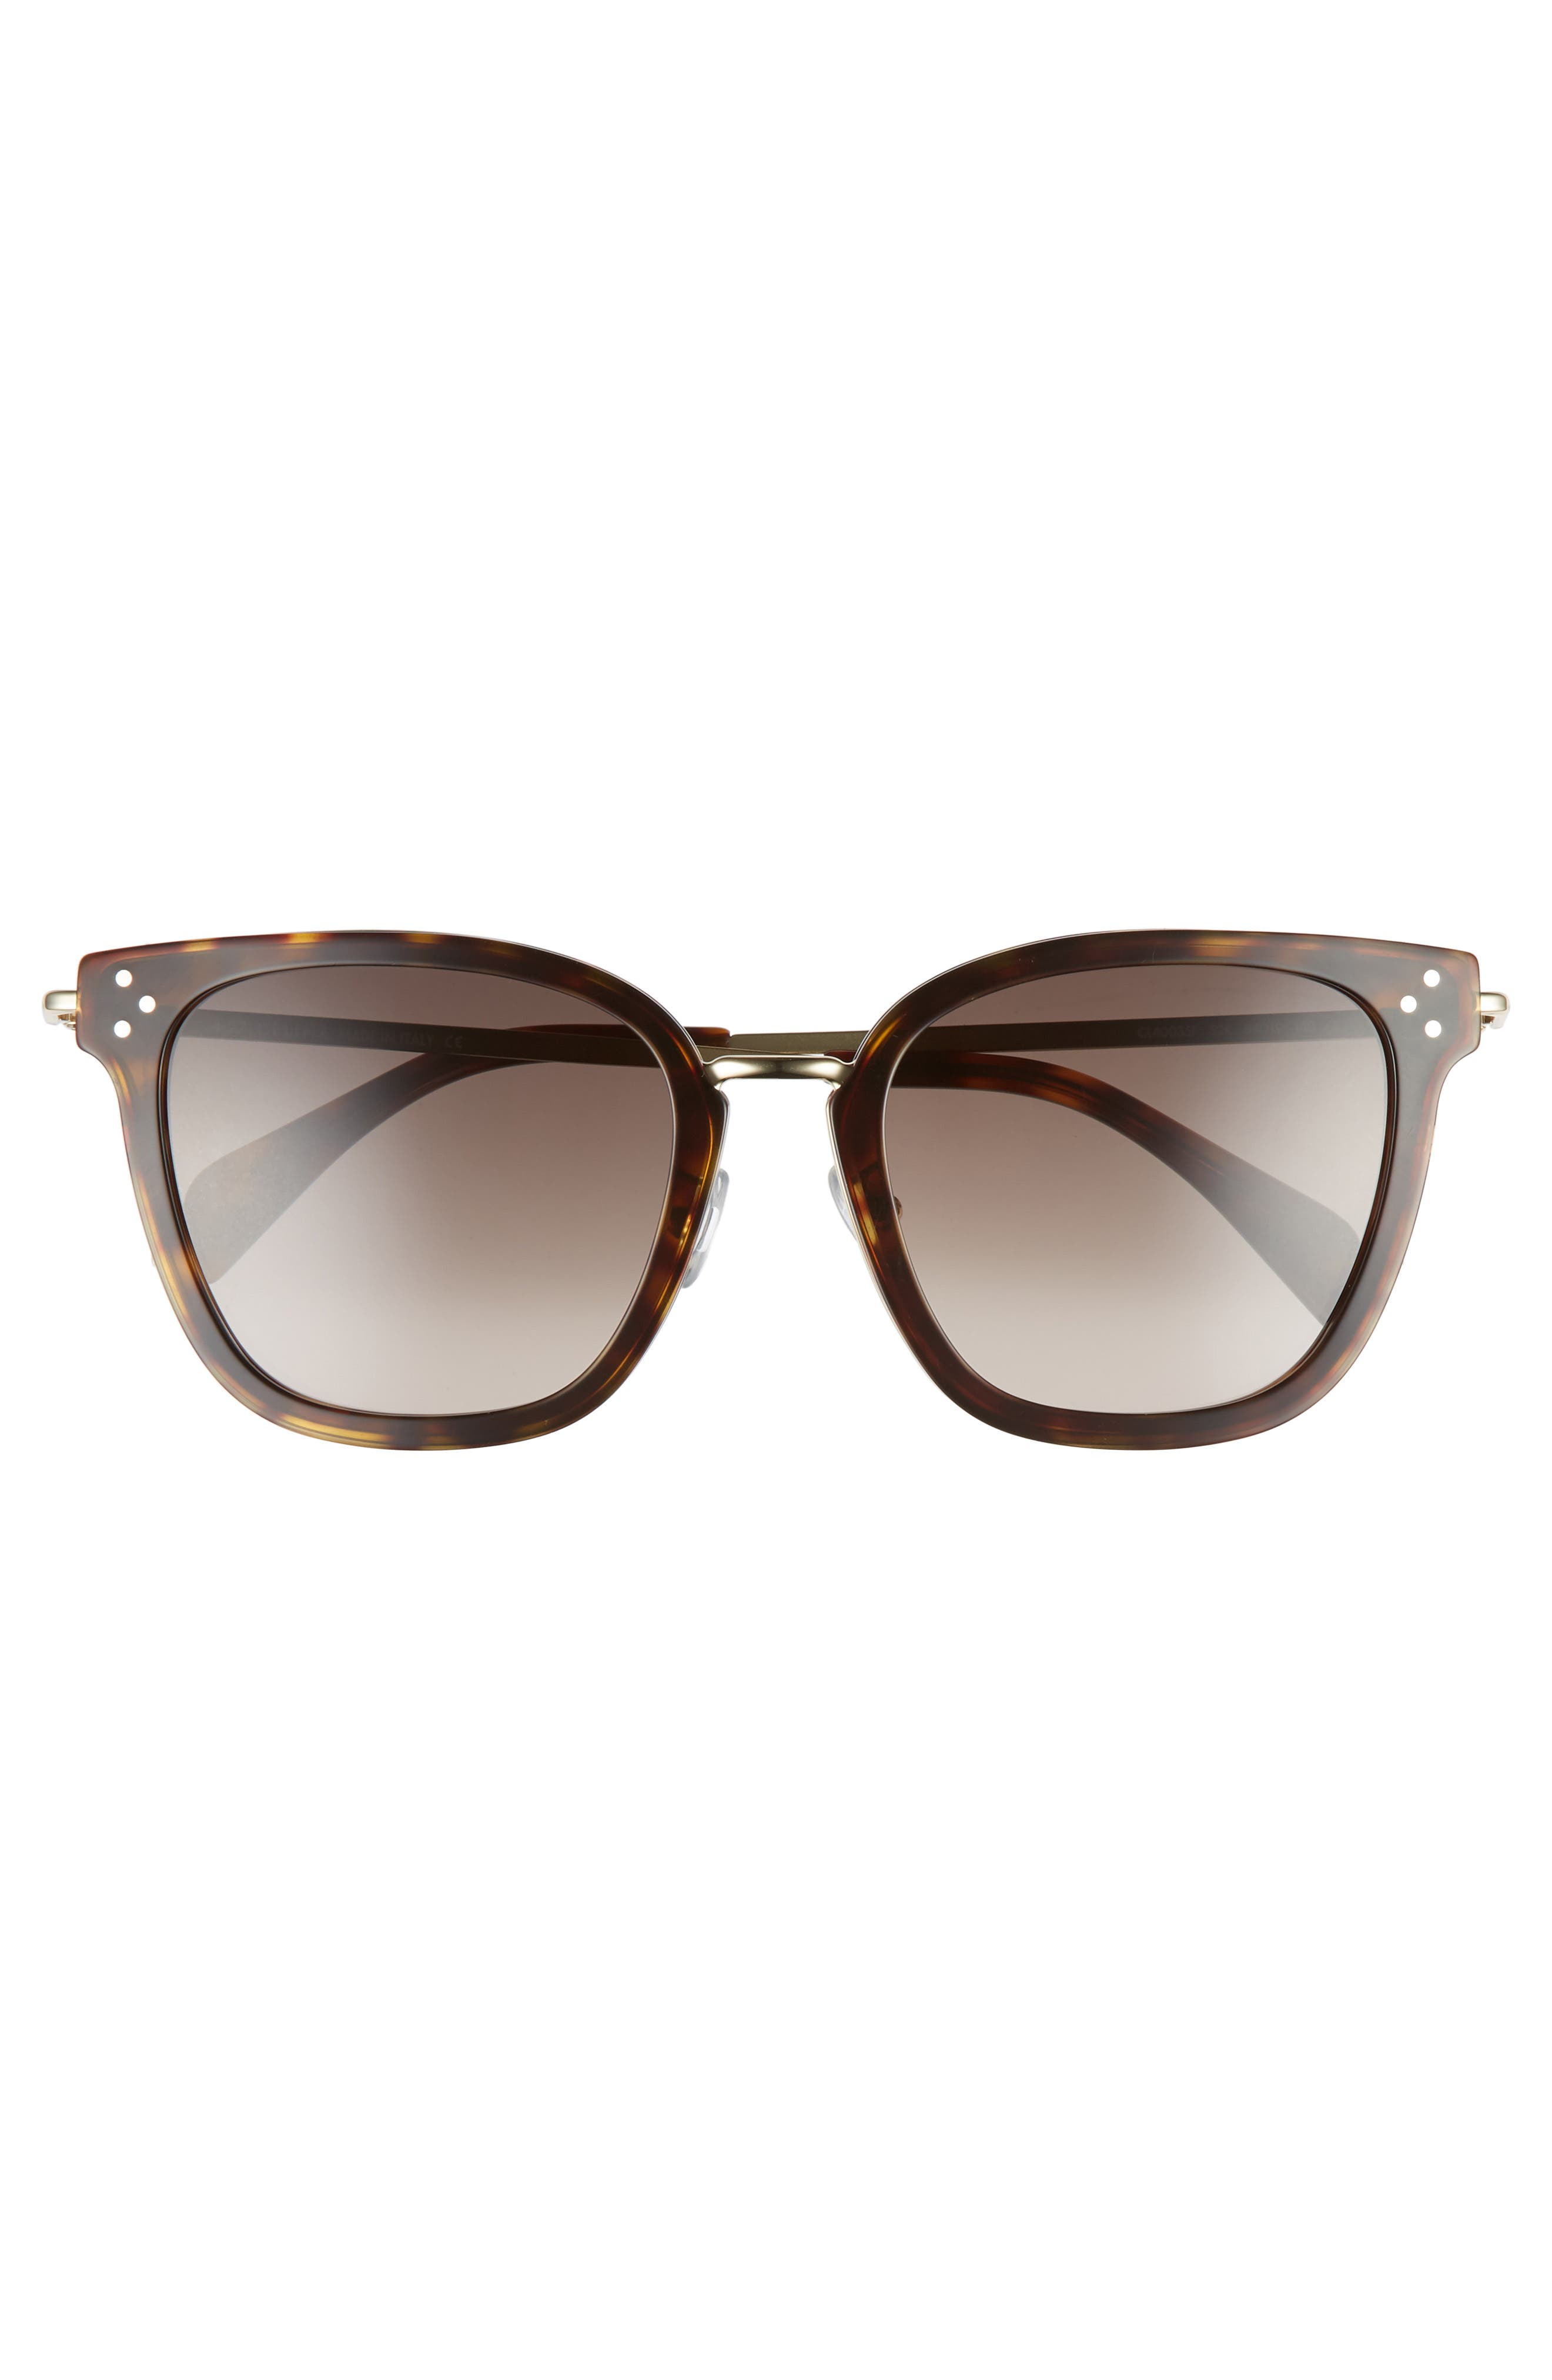 Special Fit 54mm Sunglasses,                             Alternate thumbnail 3, color,                             Havana/ Gold/ Brown